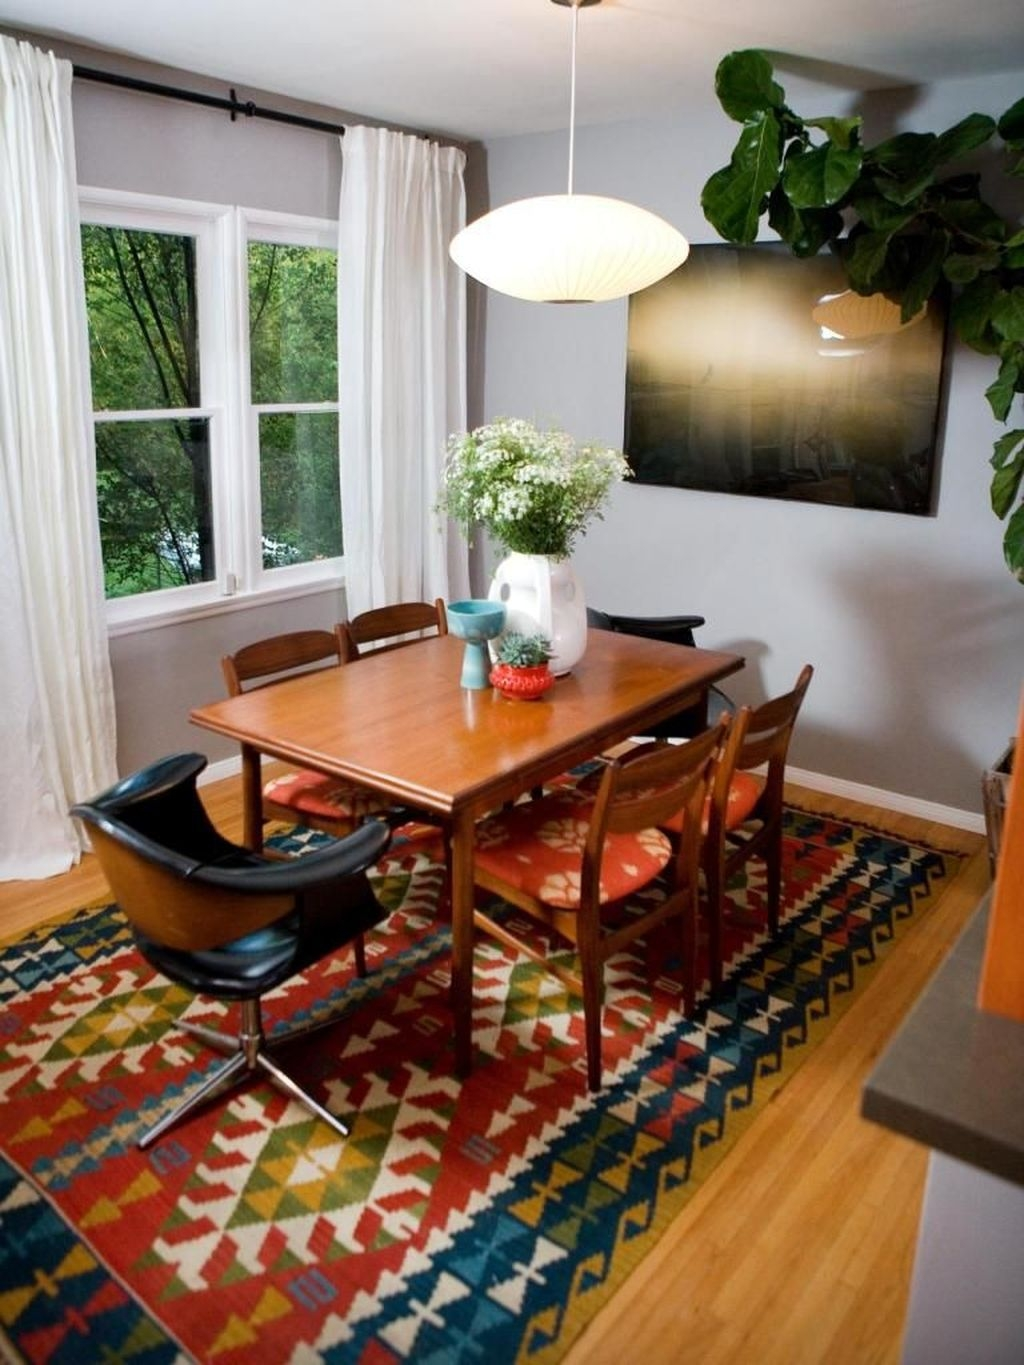 Unordinary Dining Room Design Ideas With Bohemian Style39